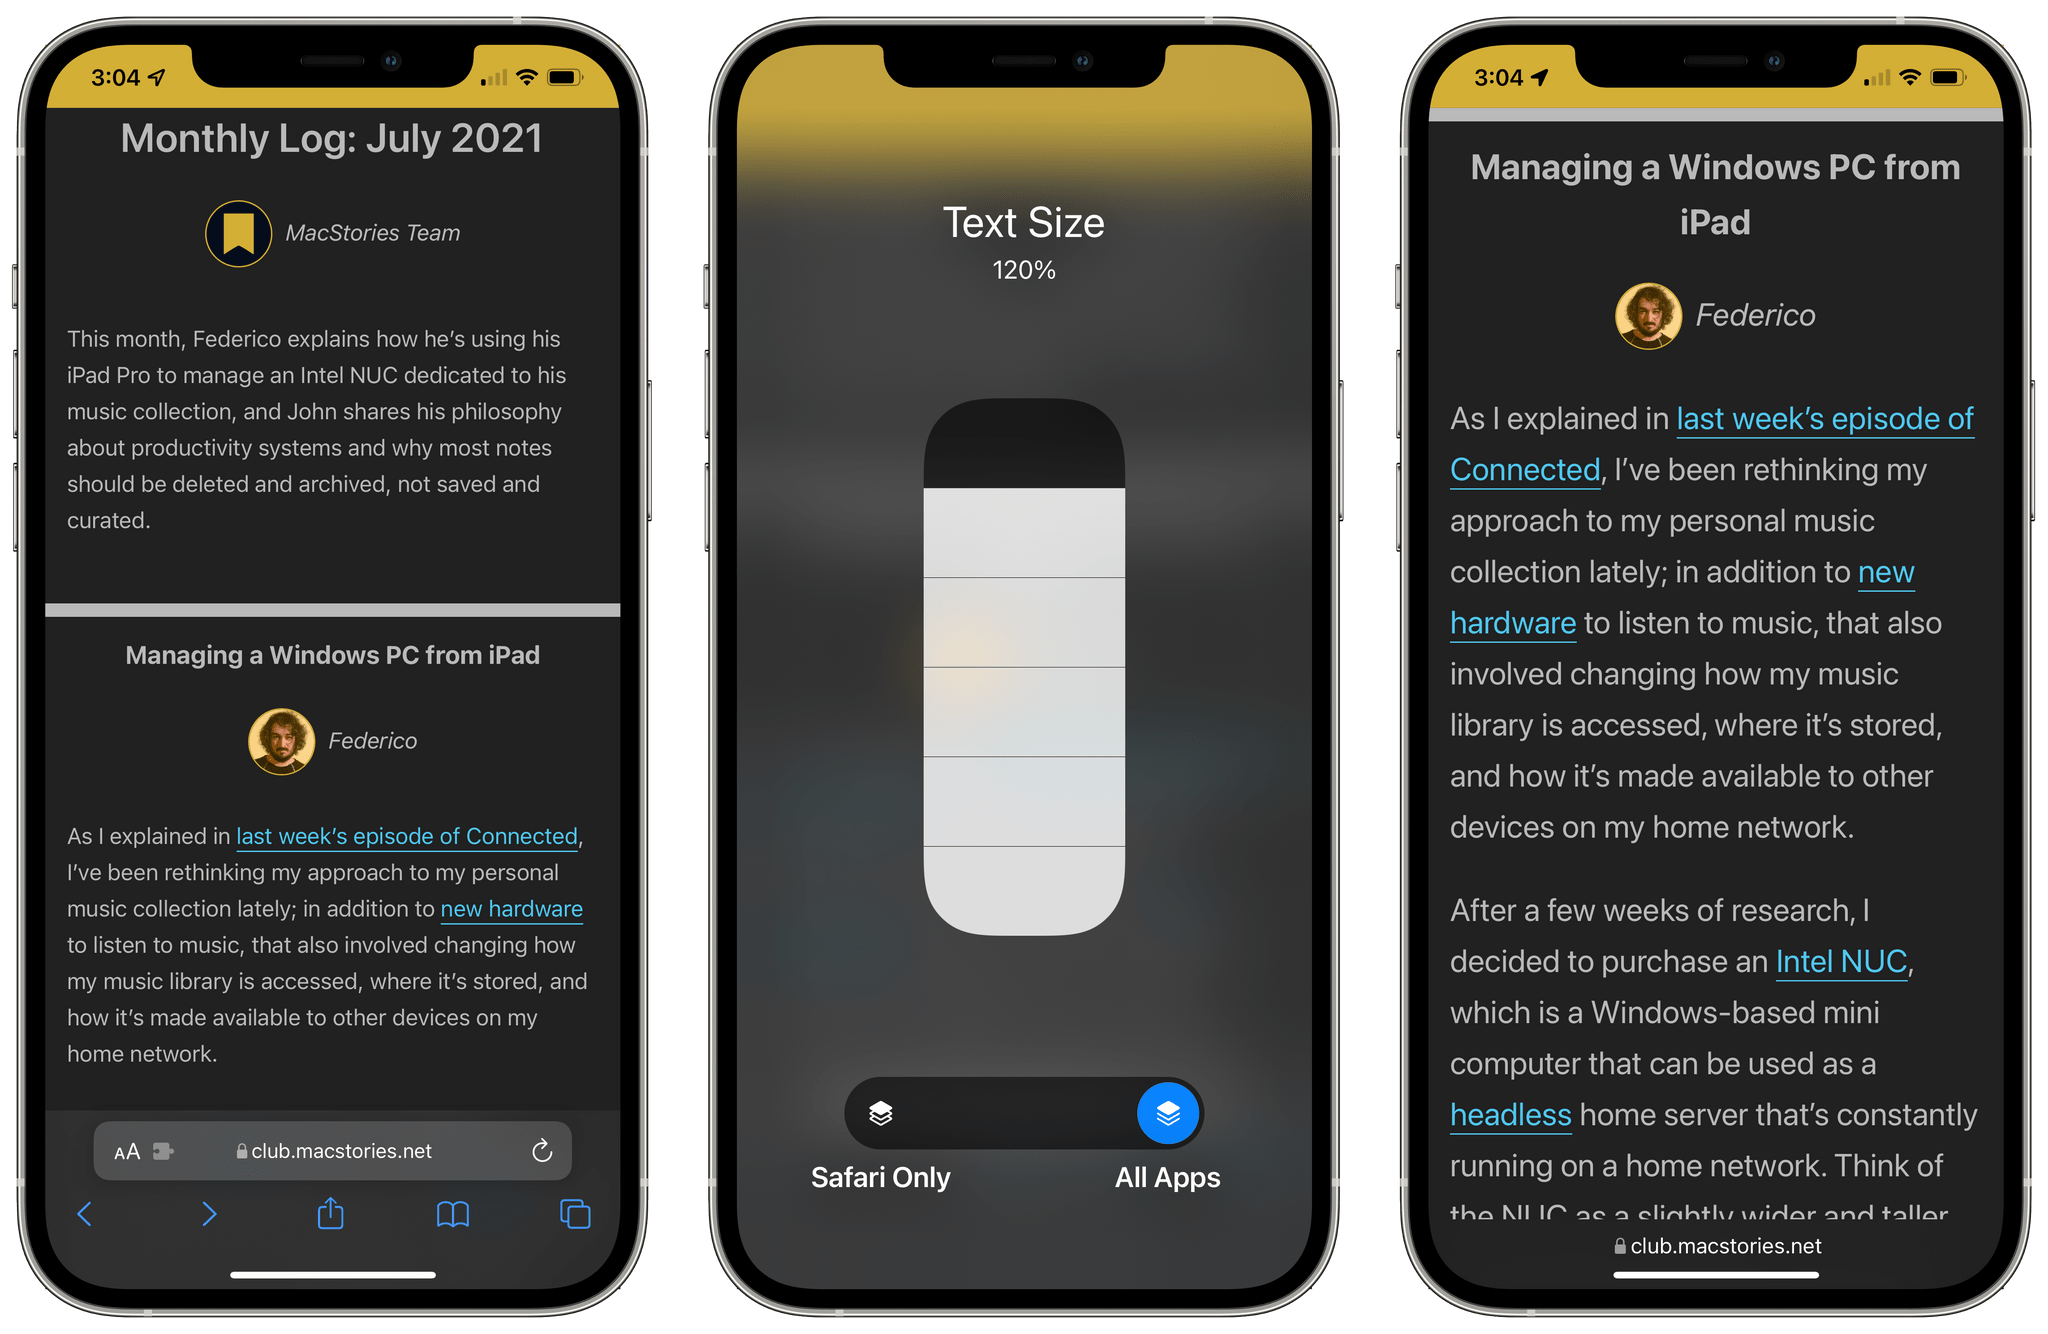 Calliope fully supports accessible text sizes on iOS and iPadOS.